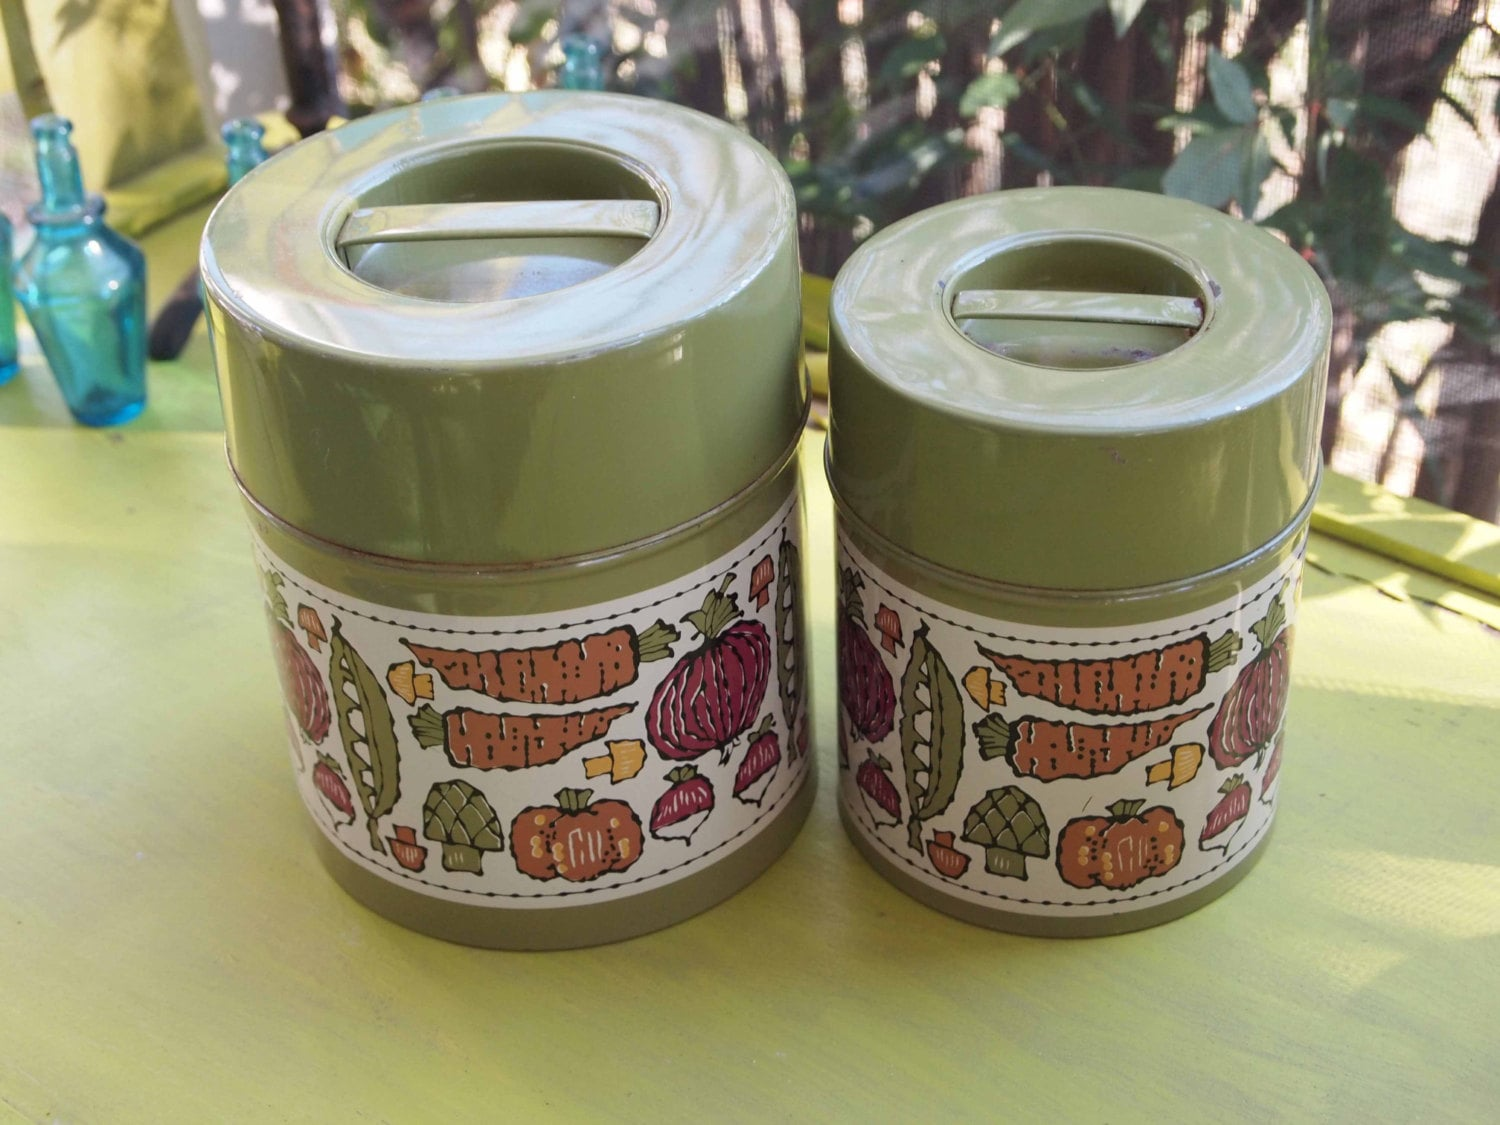 Kitchen Canisters Metal Canisters Kitchen Storage Cans